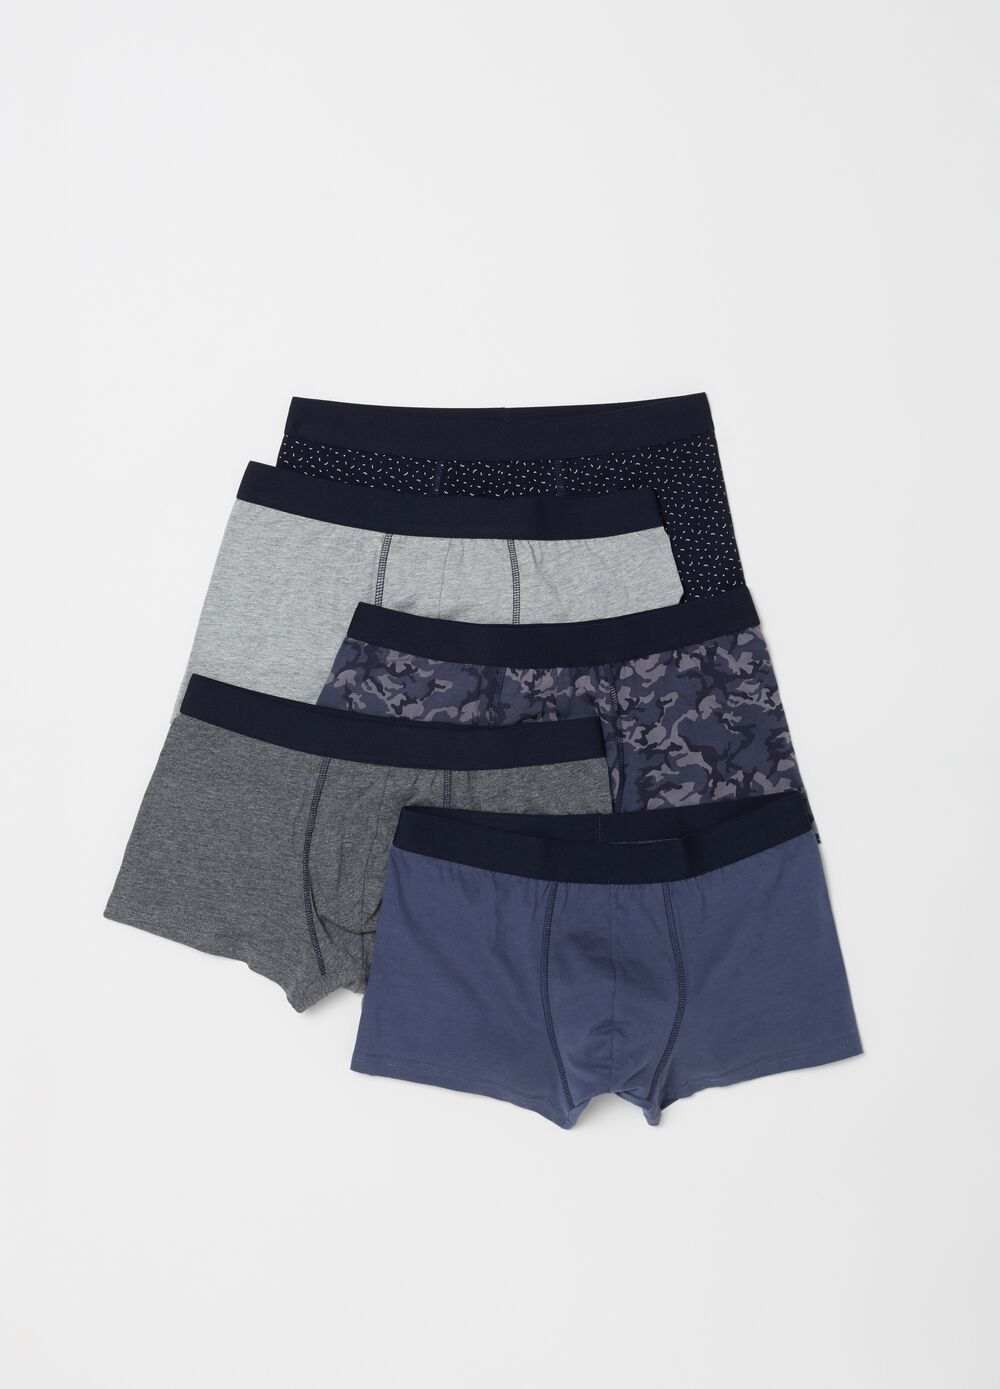 Five-pack boxers in 100% cotton